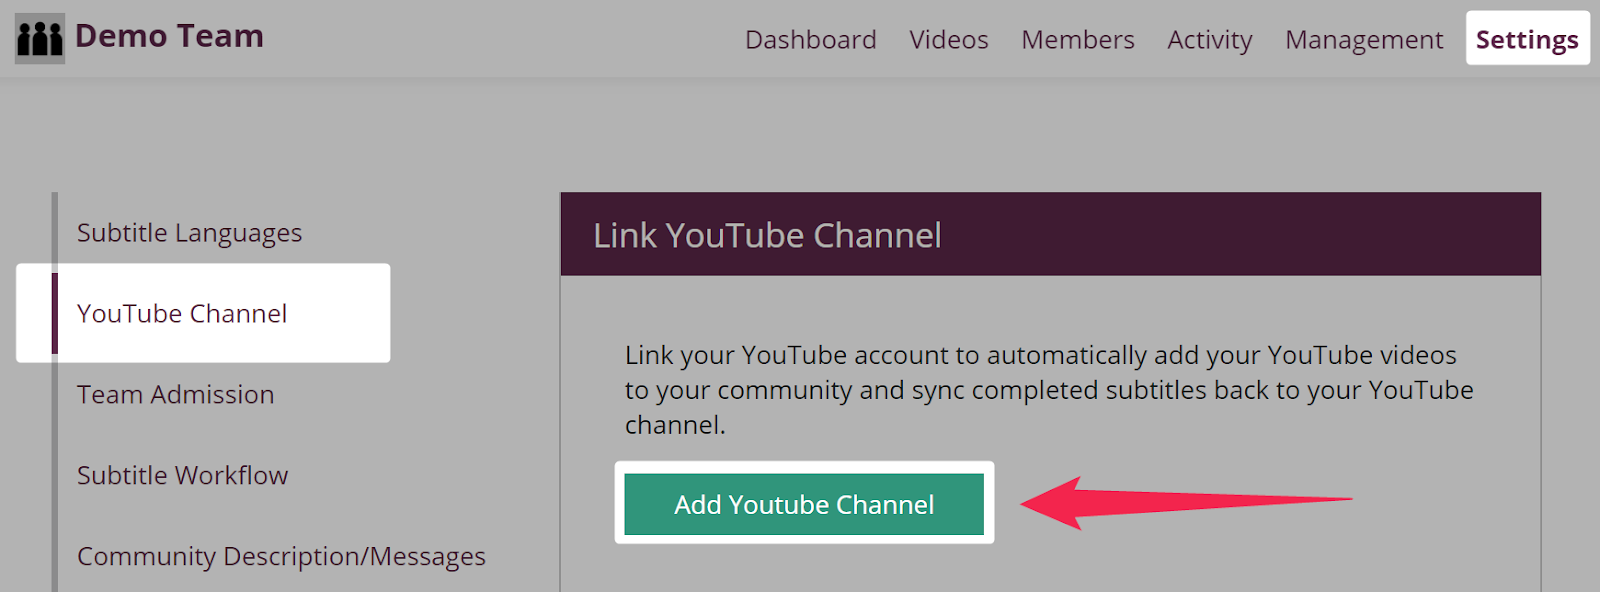 Add YouTube channel button highlighted on settings youtube channel page